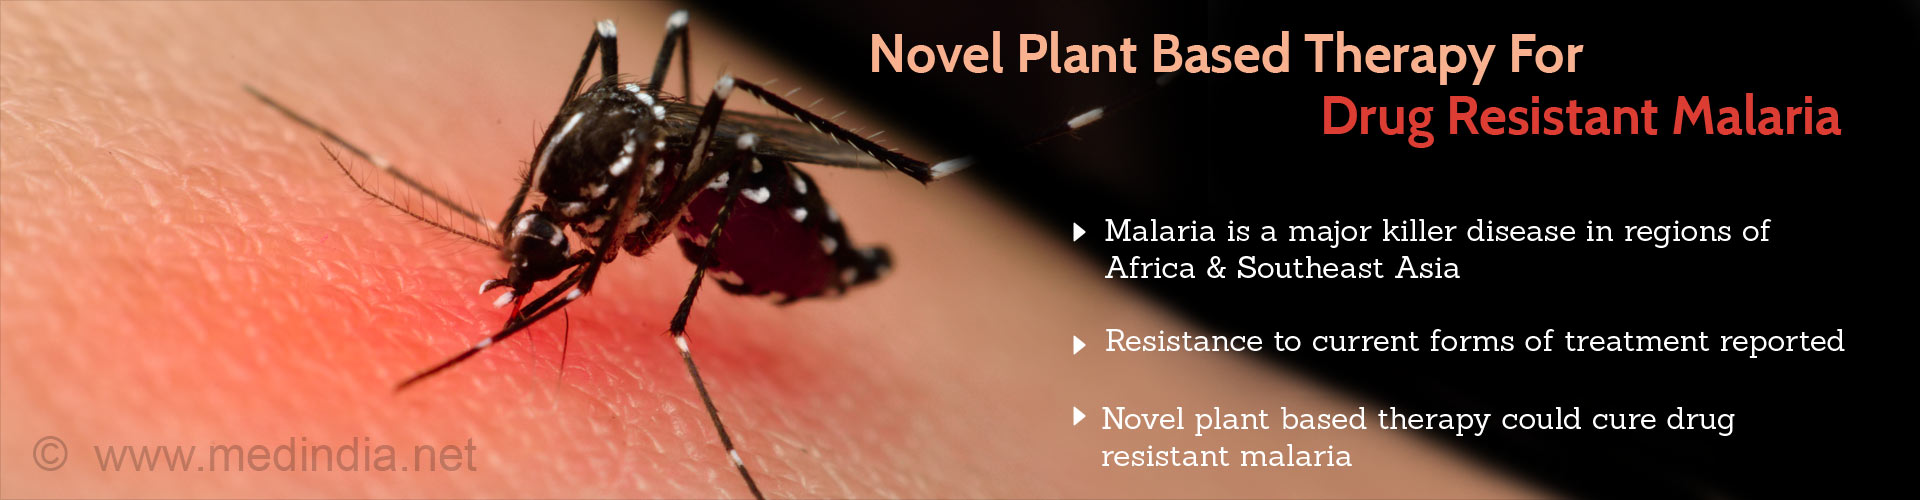 Novel plant based therapy for drug resistant malaria